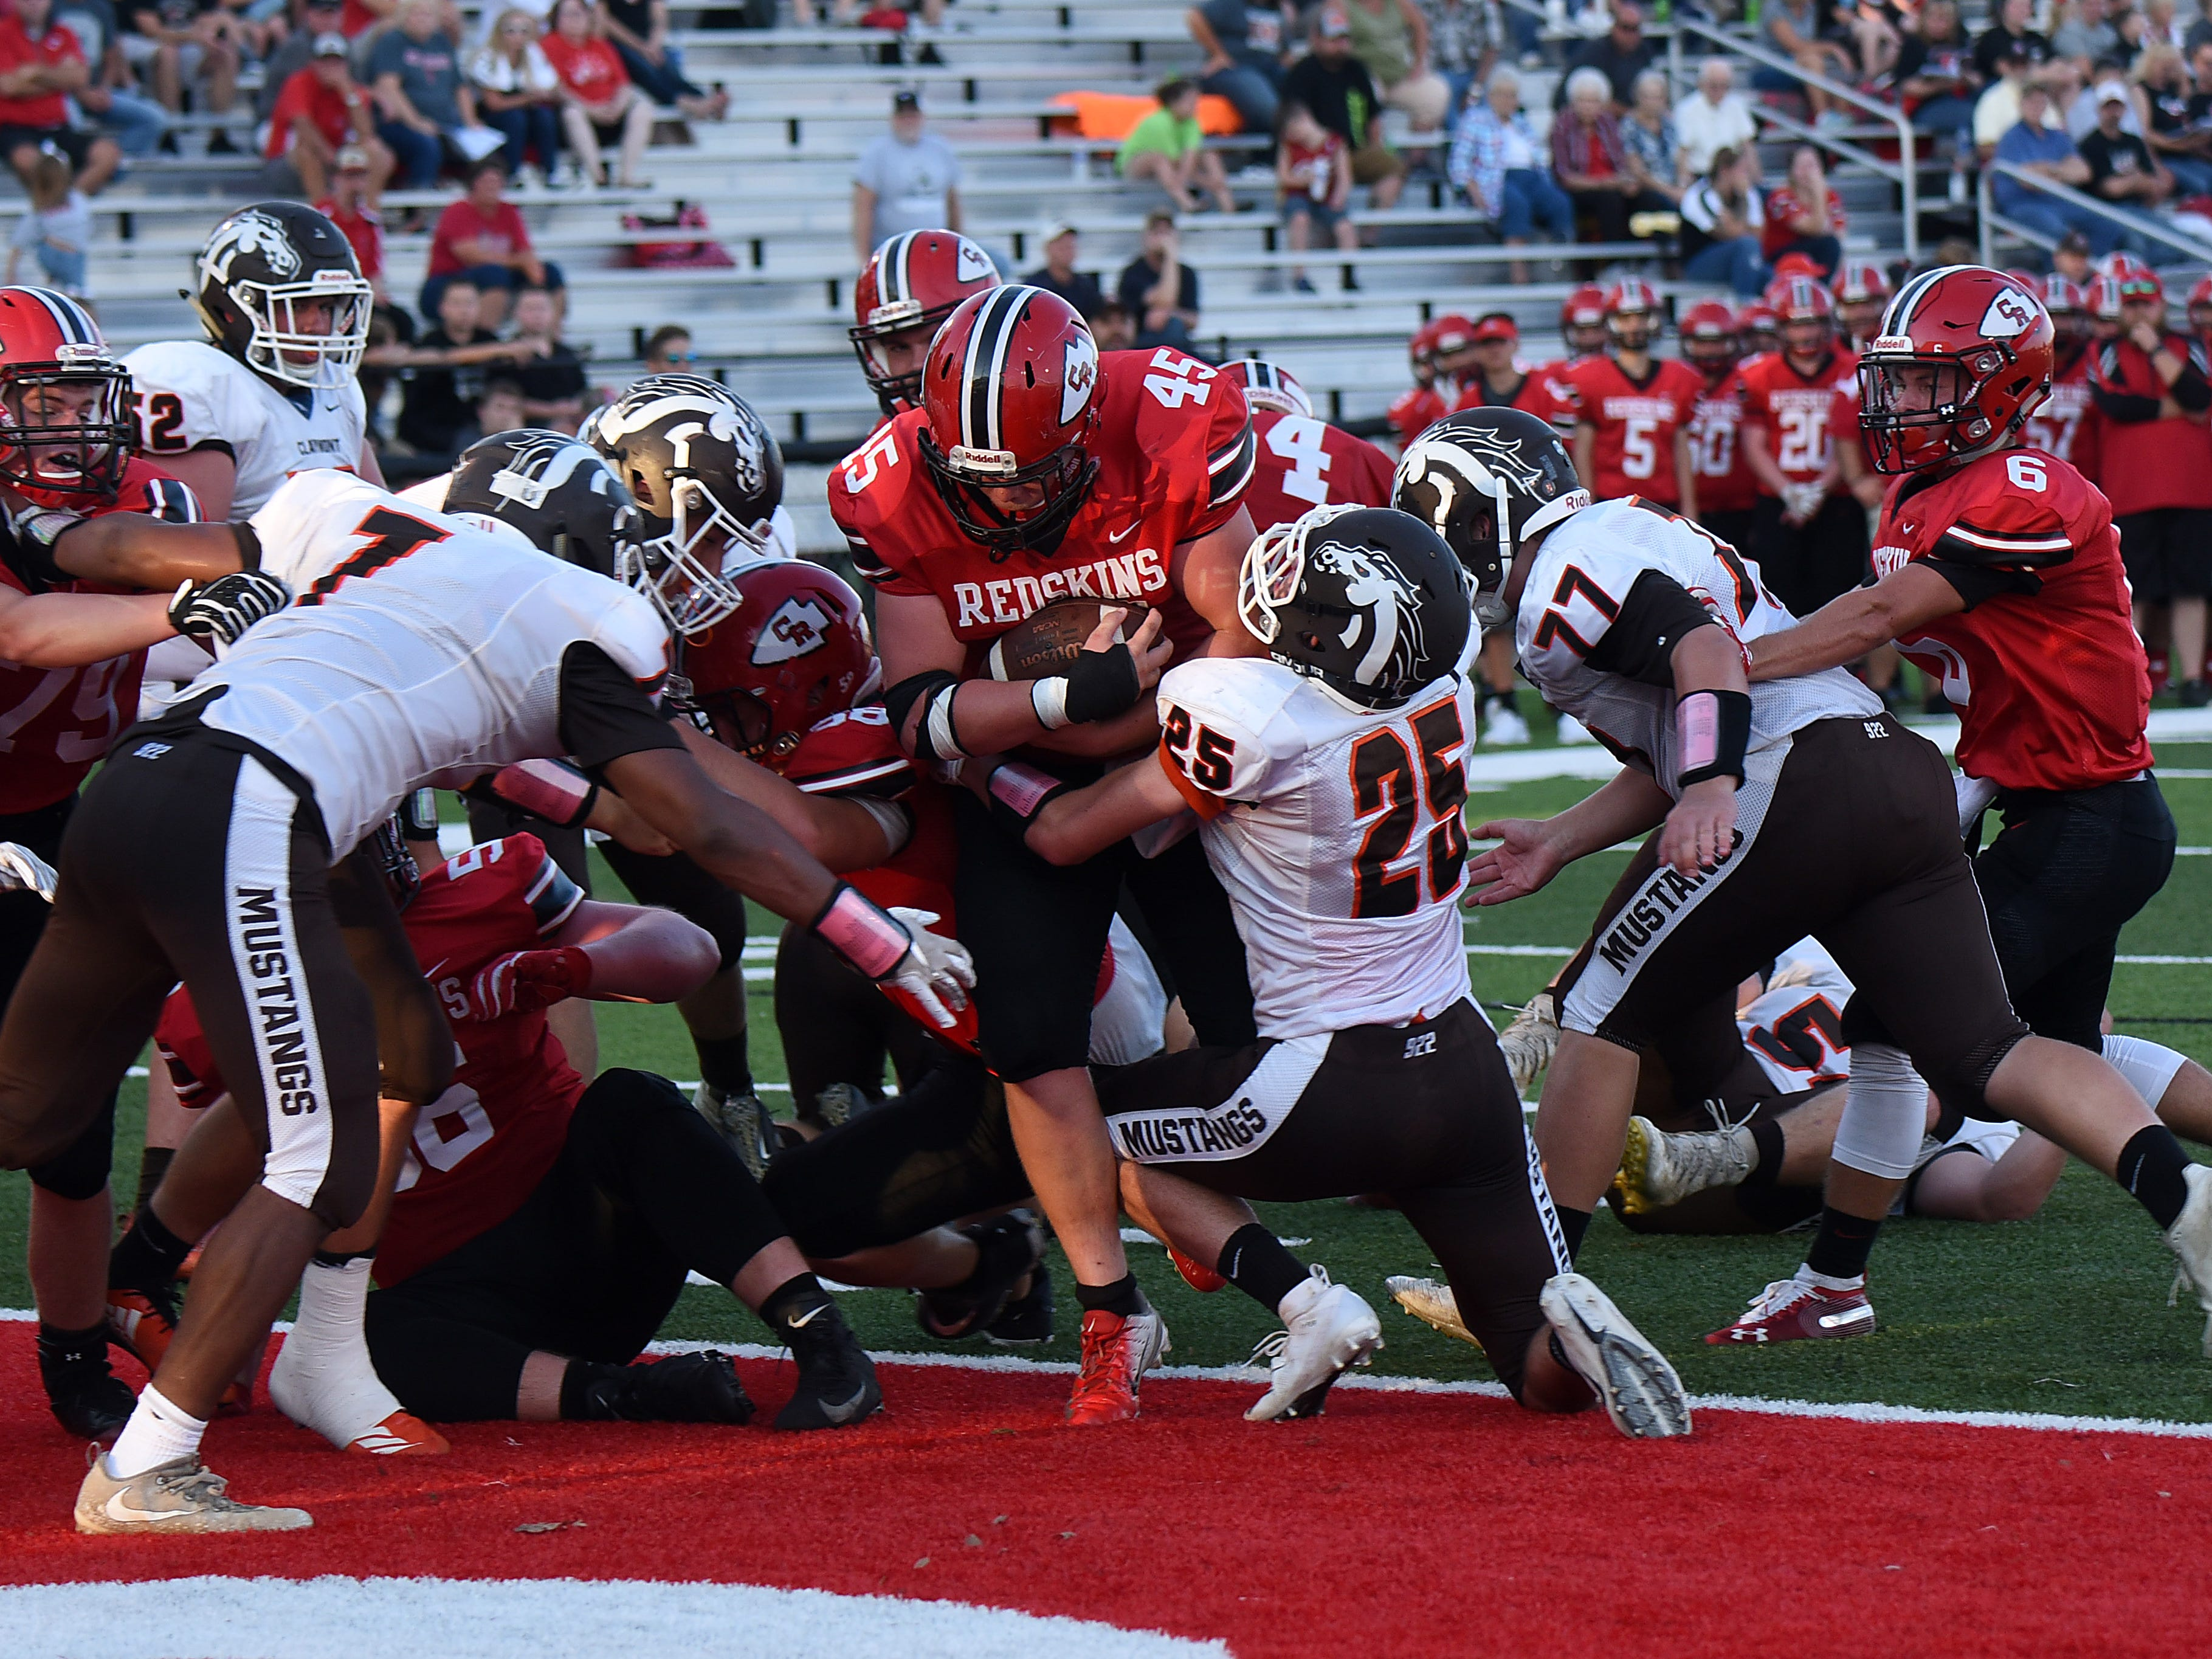 Coshocton senior Zach Crown breaks through the scrum and in to the end zone during Friday night's home opener. Coshocton won 42-6.